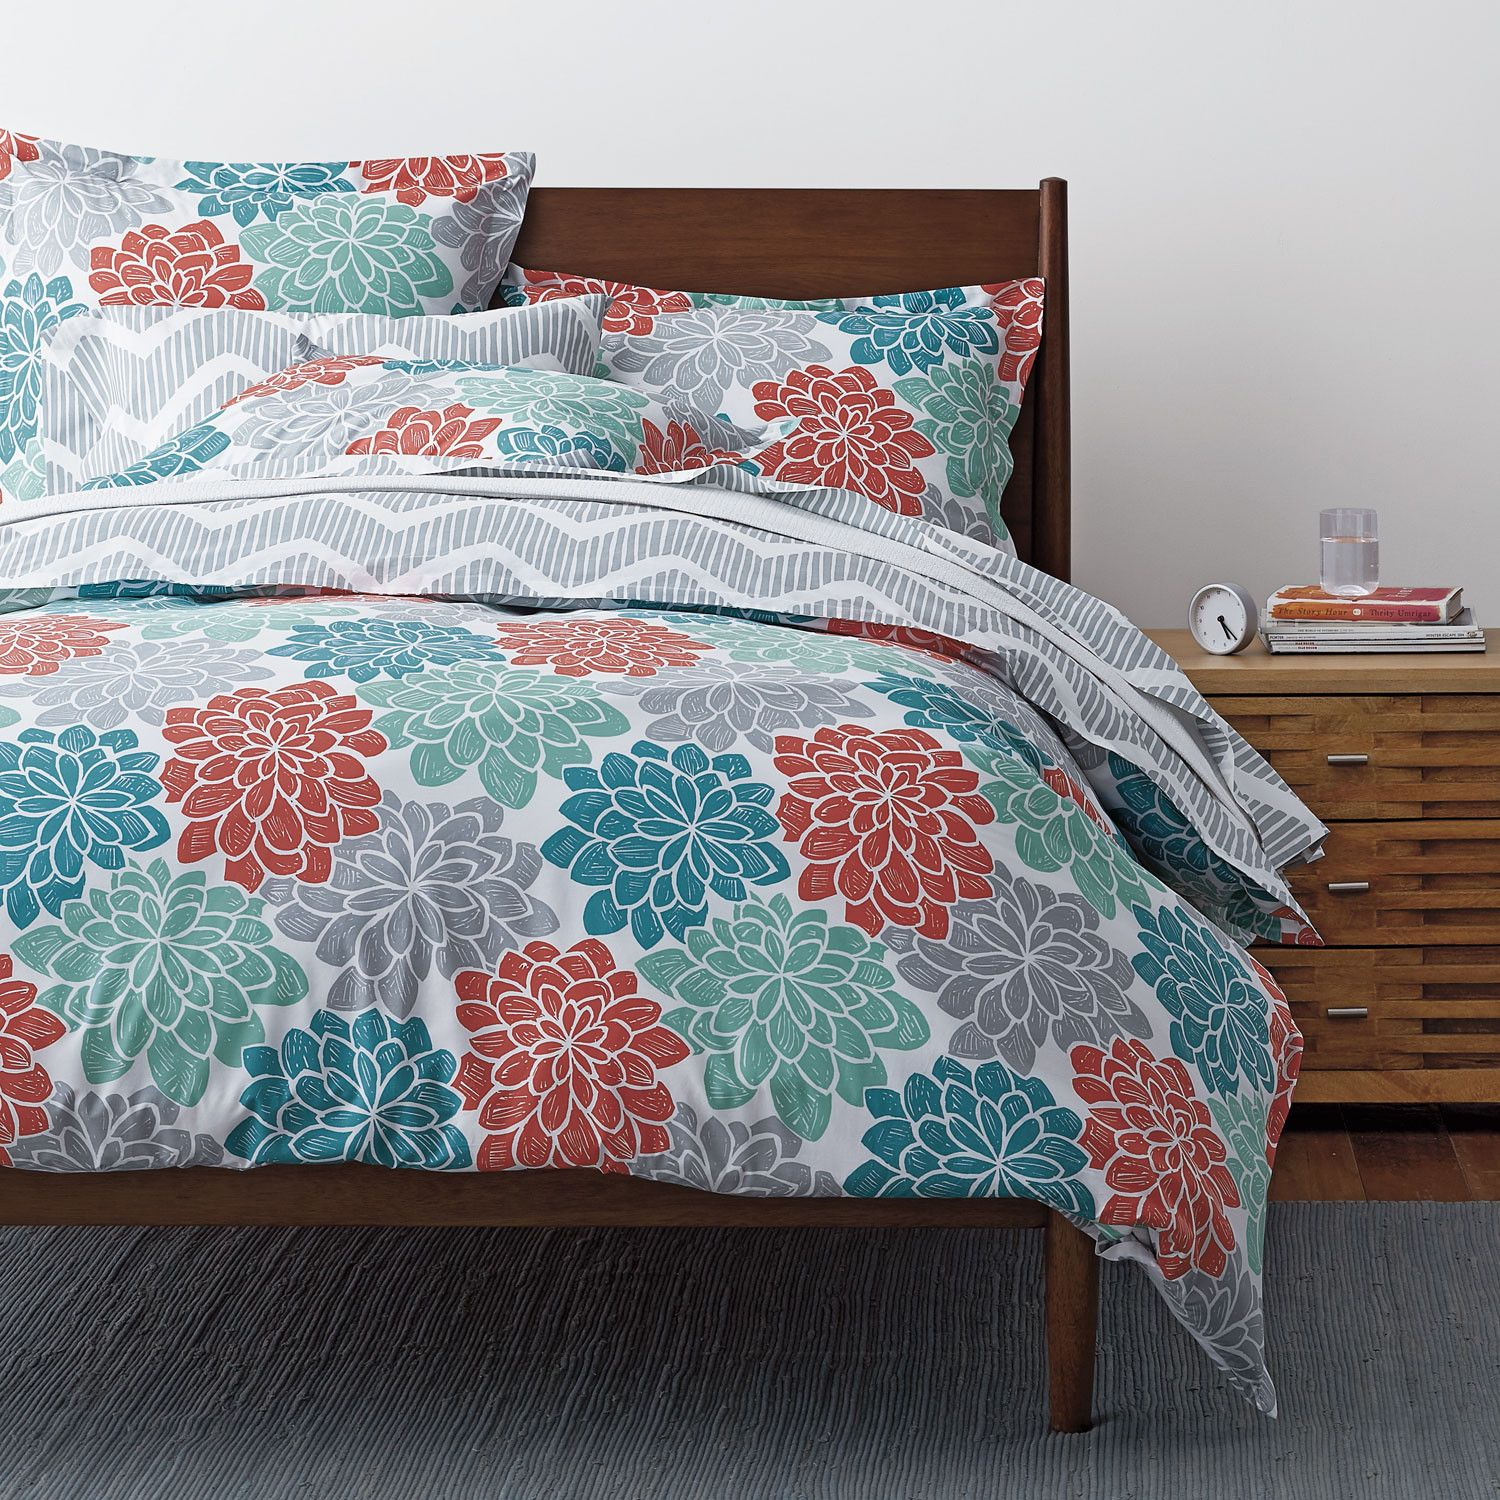 This bold duvet cover flourishes in any bedroom with its